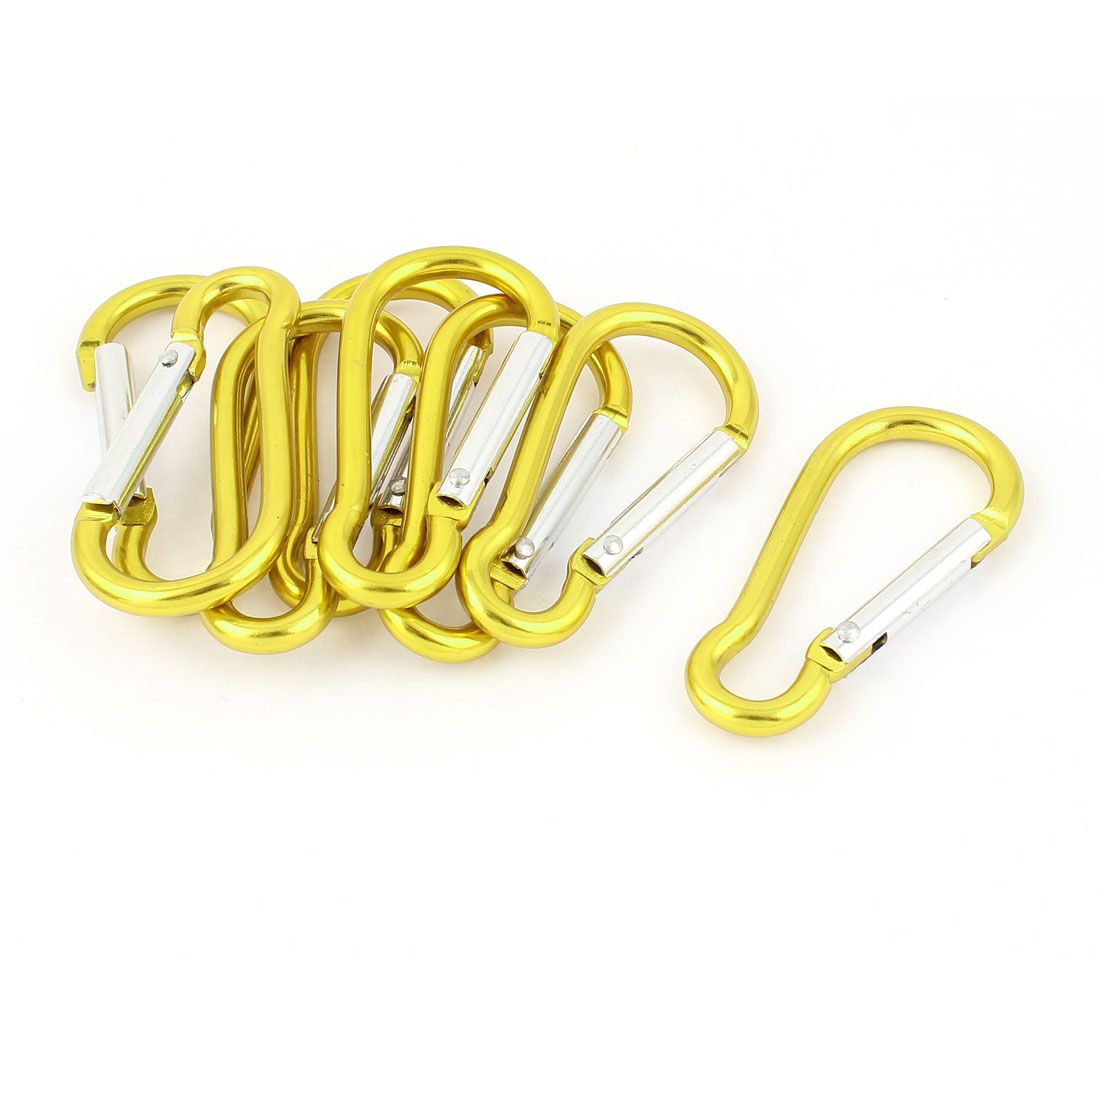 Cycling Camping Spring Clip Snap Carabiner Hook Keychain Karabiner Bottle Holder 8pcs Yellow